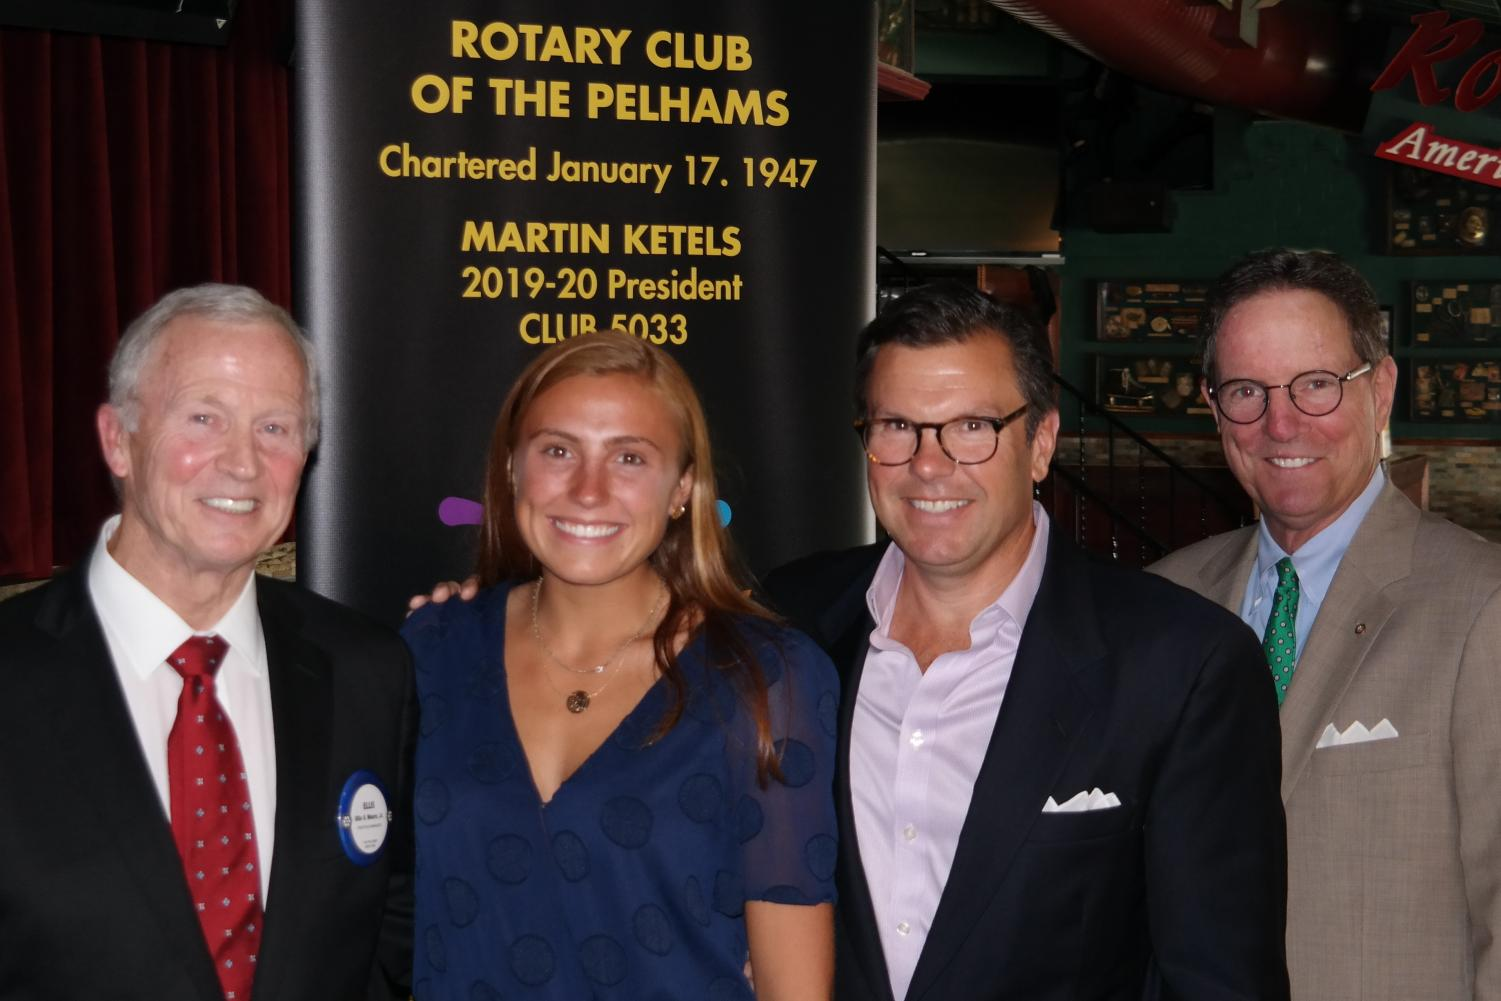 From left, Rotarian Ellis Moore Jr., Charlotte Edmunds; her father, Robert Edmunds, and Rotarian Kevin Falvey.